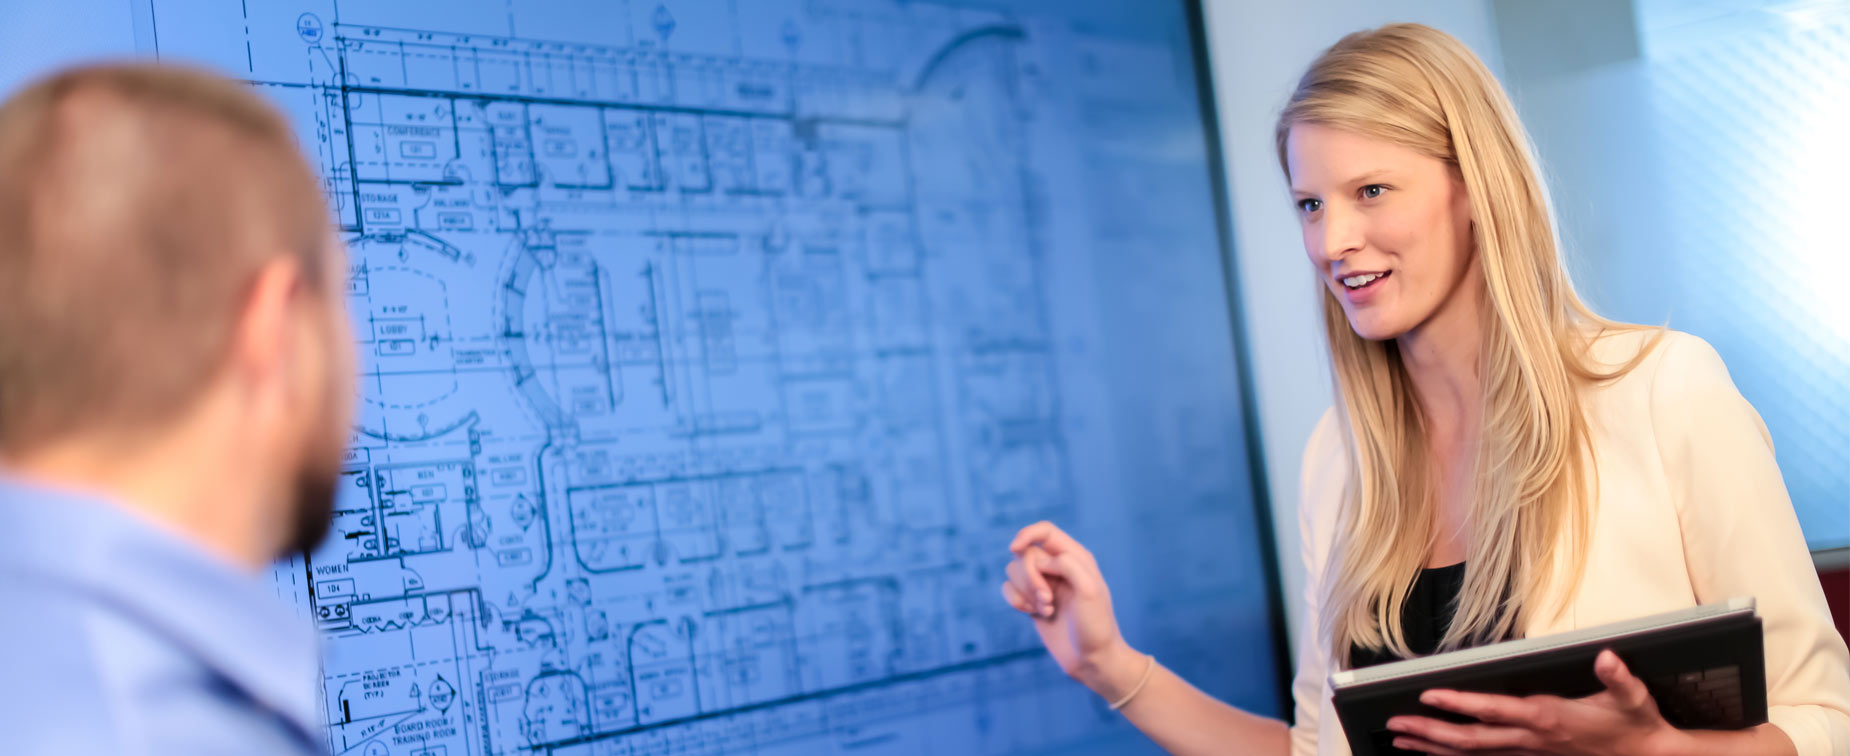 TKDA offers career opportunities in Engineering, Architecture and Planning